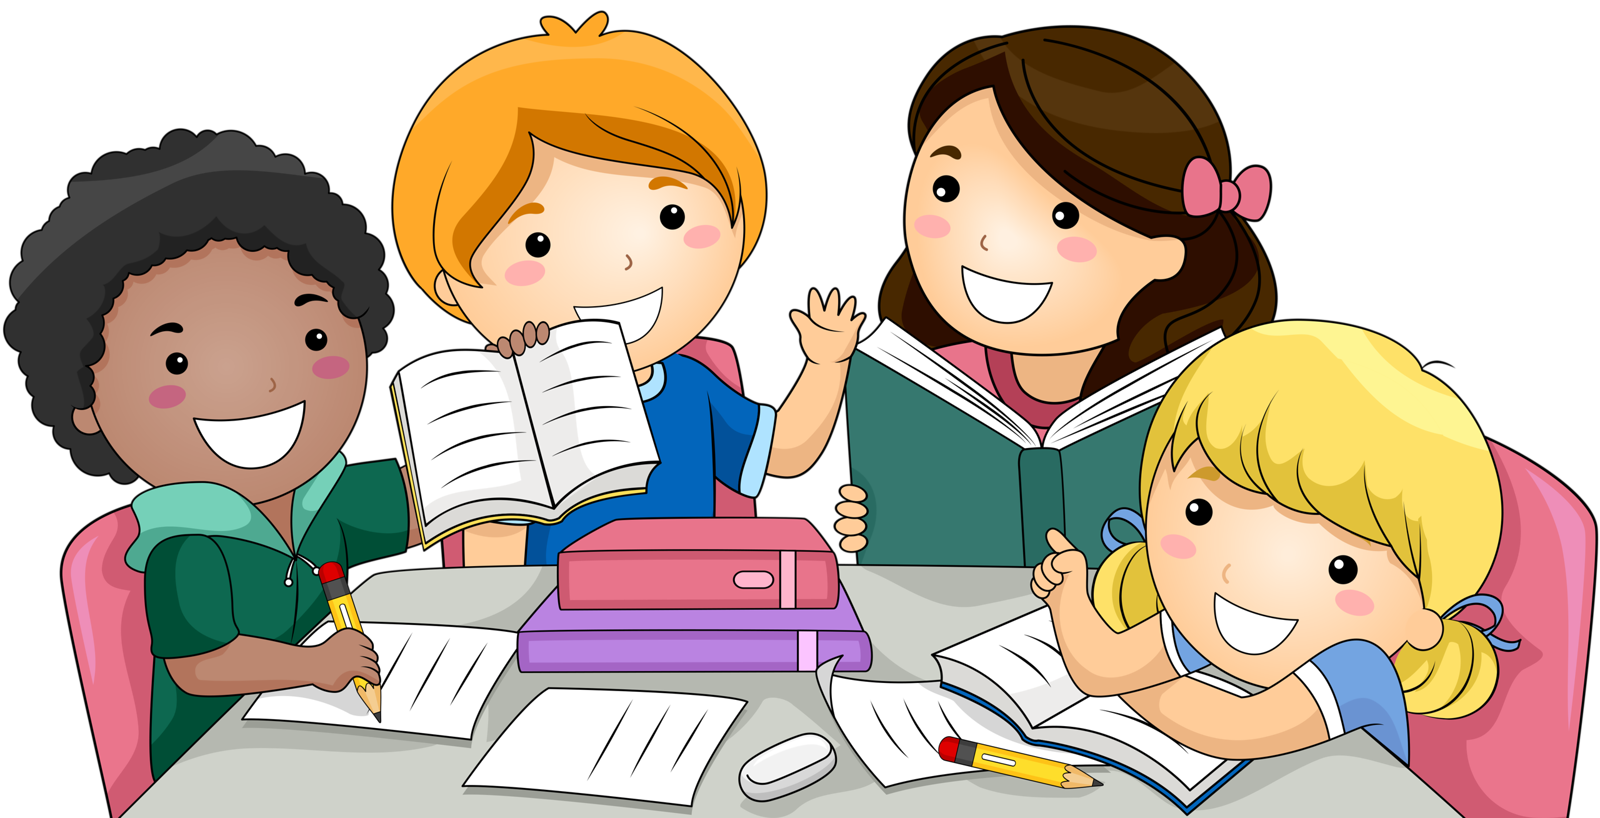 Kid stressing over homework clipart png. Pinterest album and